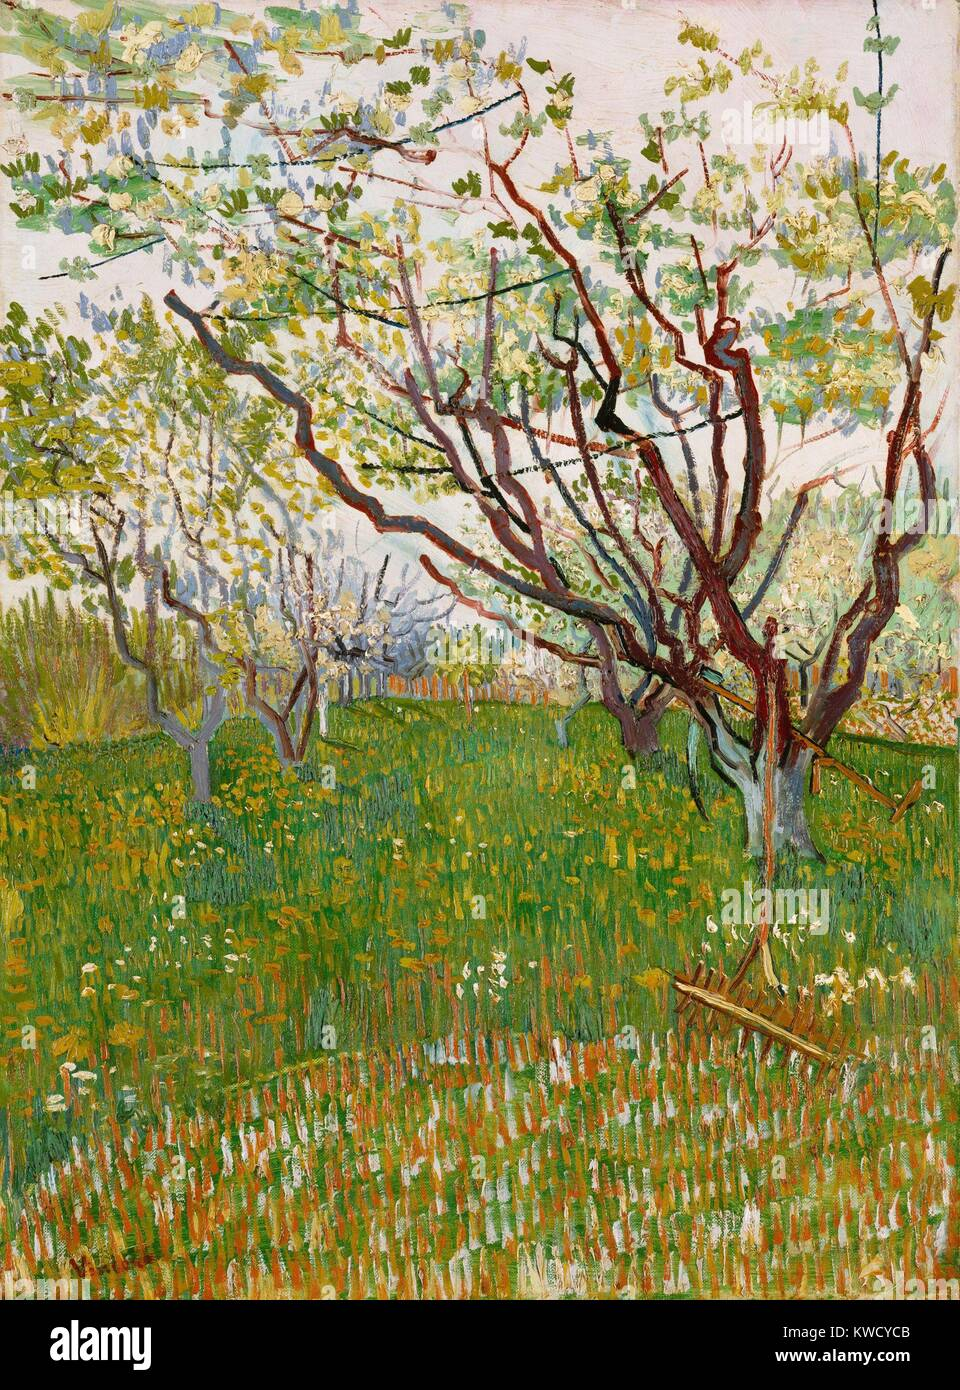 The Flowering Orchard, by Vincent Van Gogh, 1888, Dutch Post-Impressionist, oil on canvas. The angular branches - Stock Image